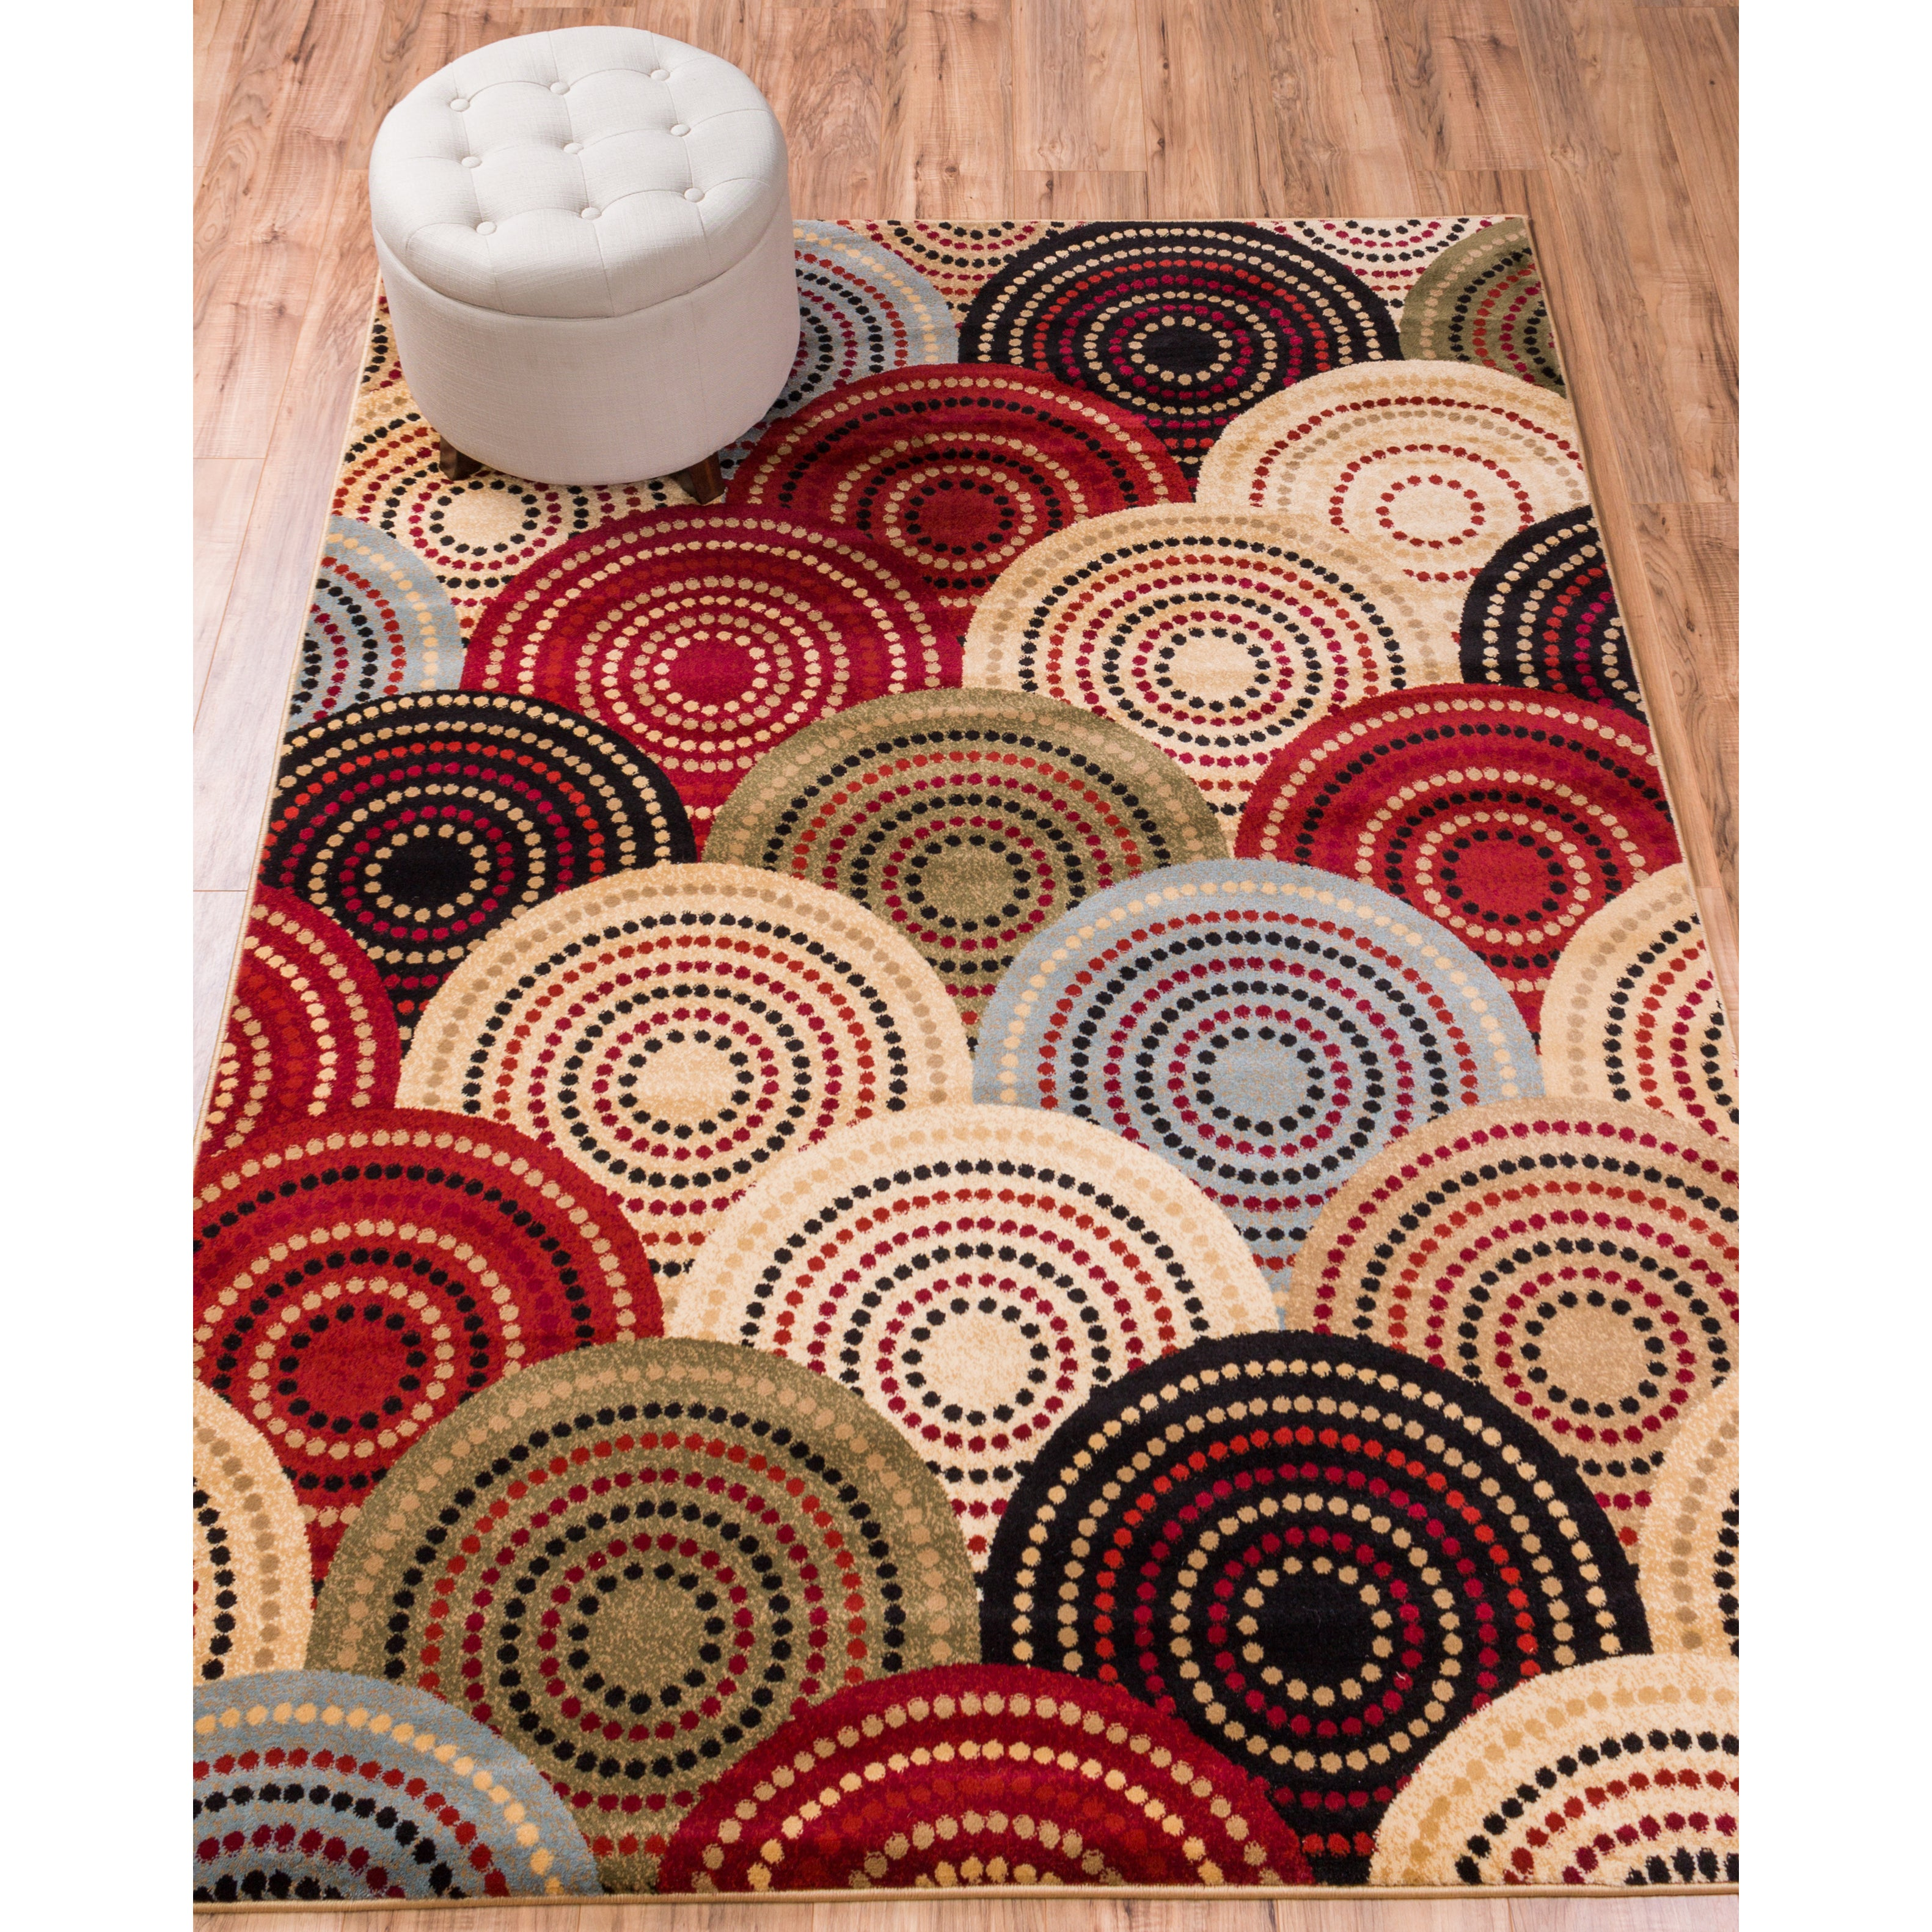 Well Woven Sublime Lines Spheres Dots Multi Polypropylene Rug (7'10 x 10'6 )